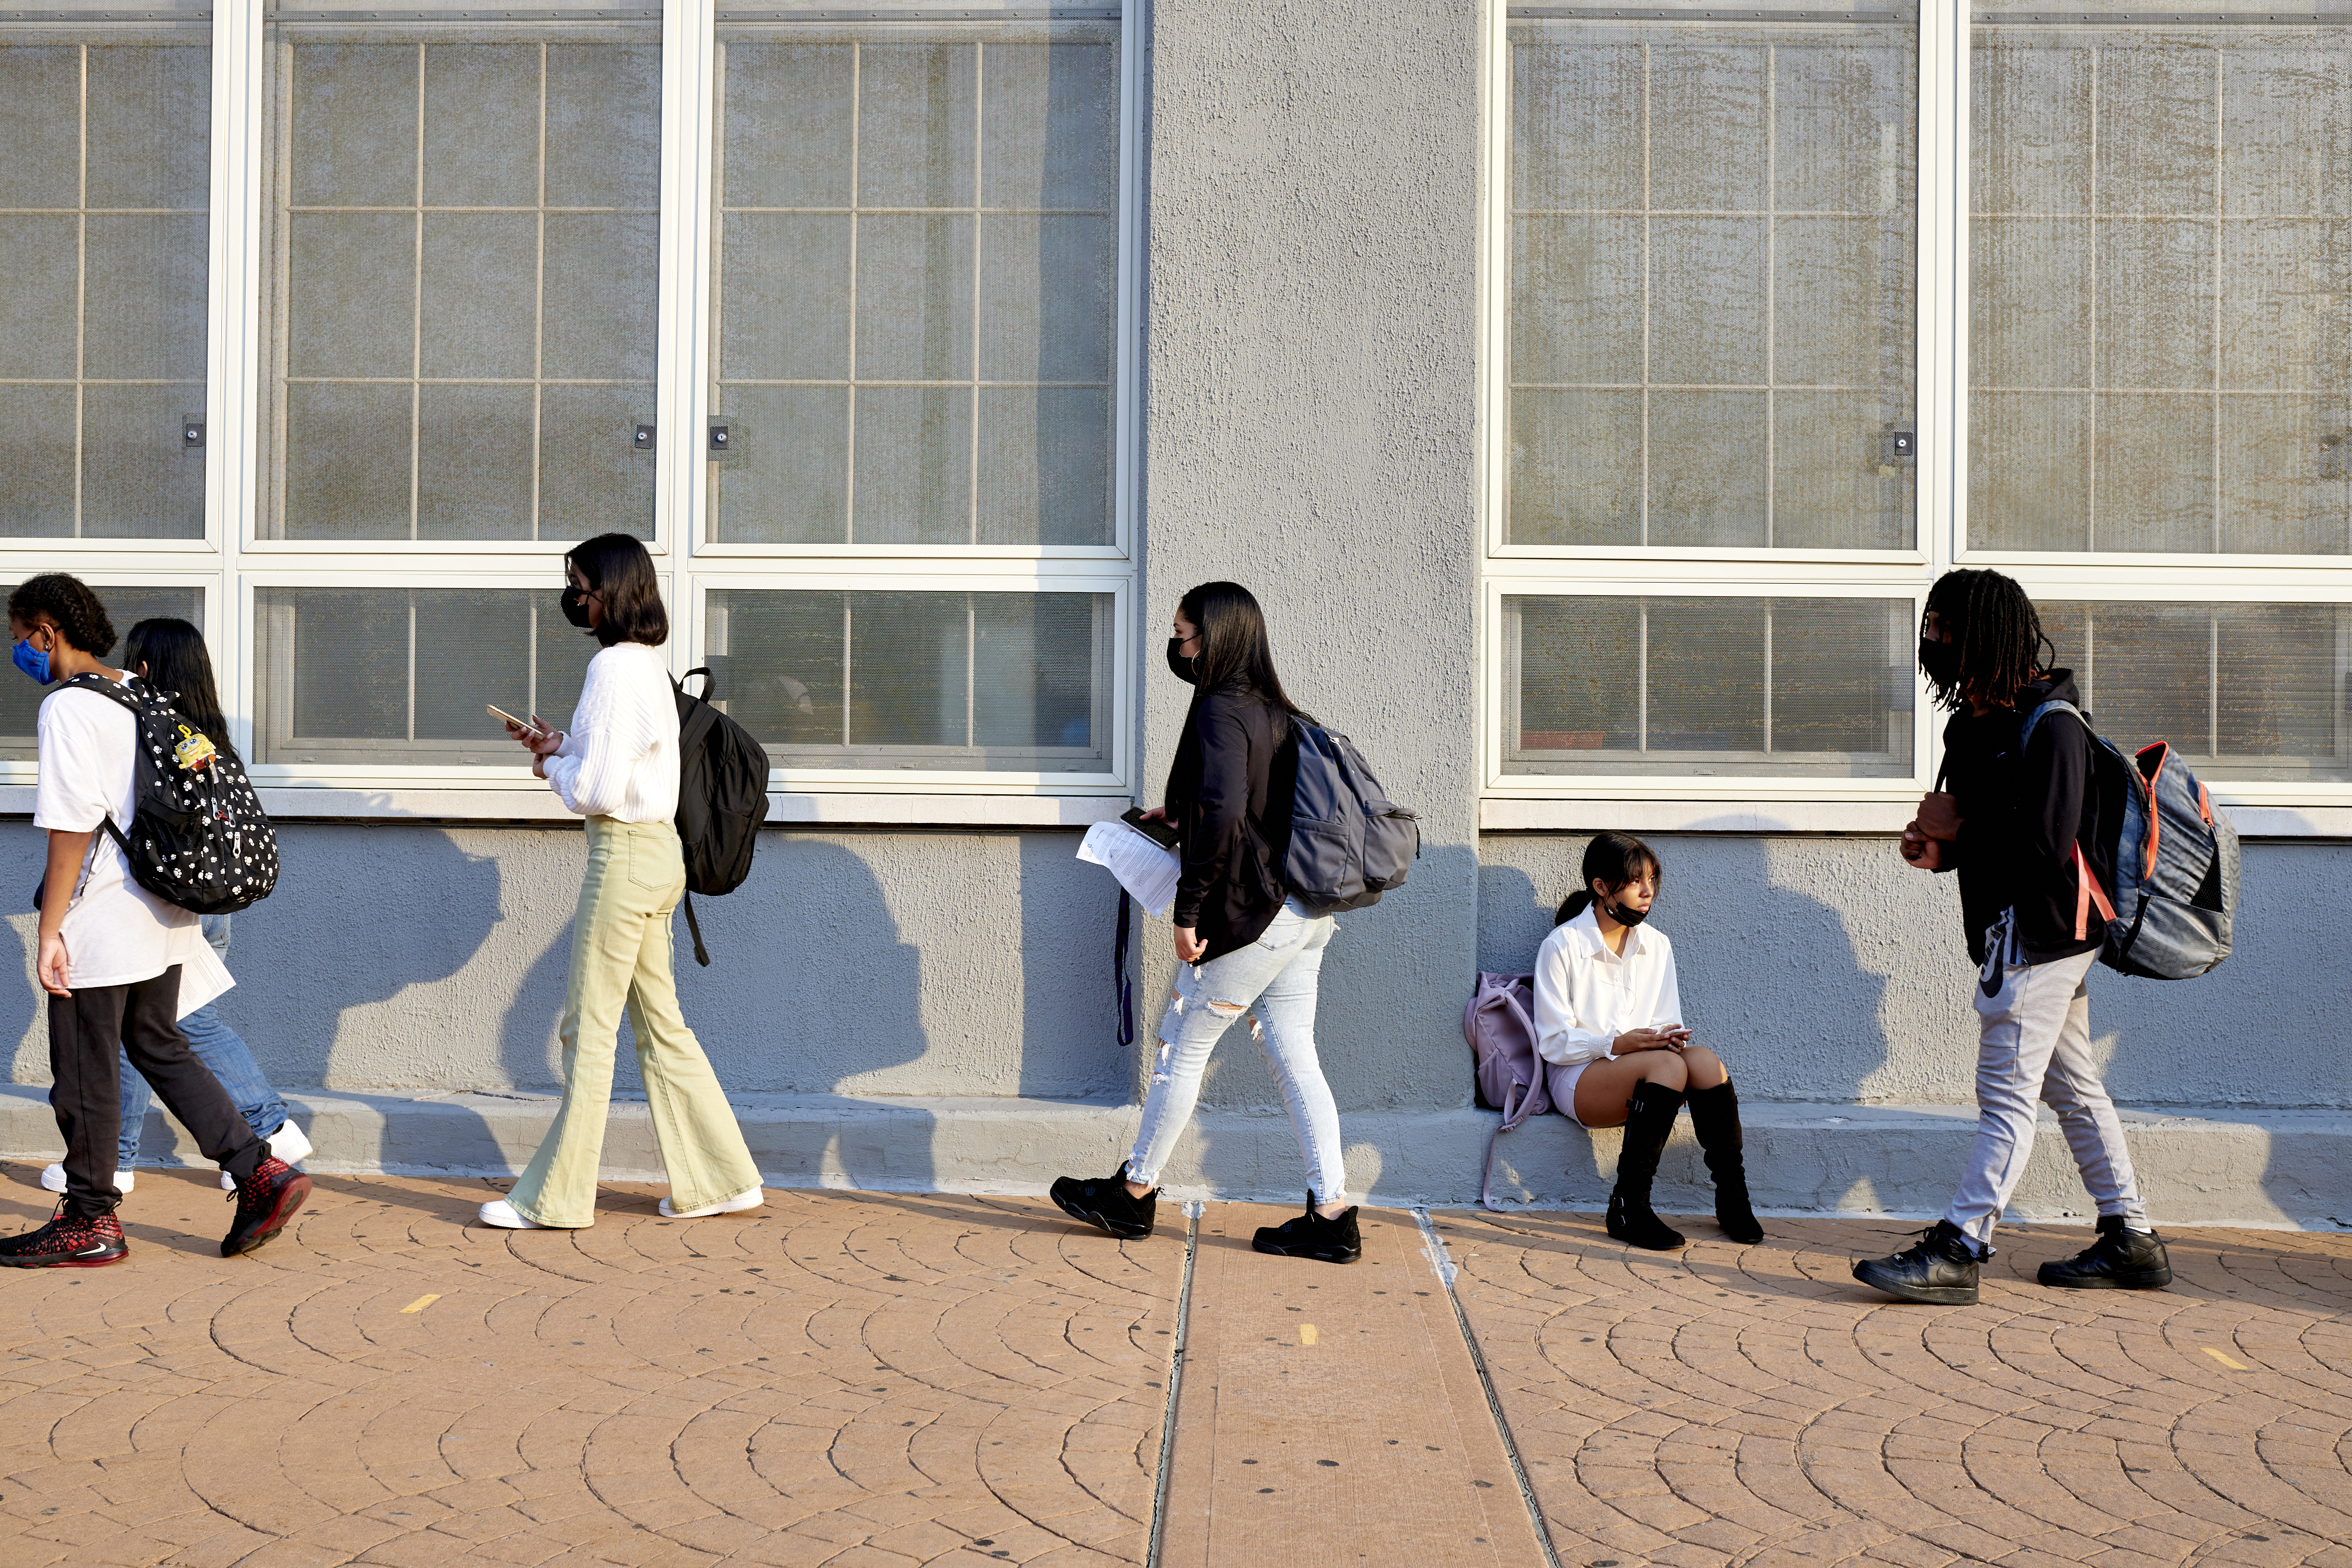 Students wait in line on school campus for COVID screening before classes begin.